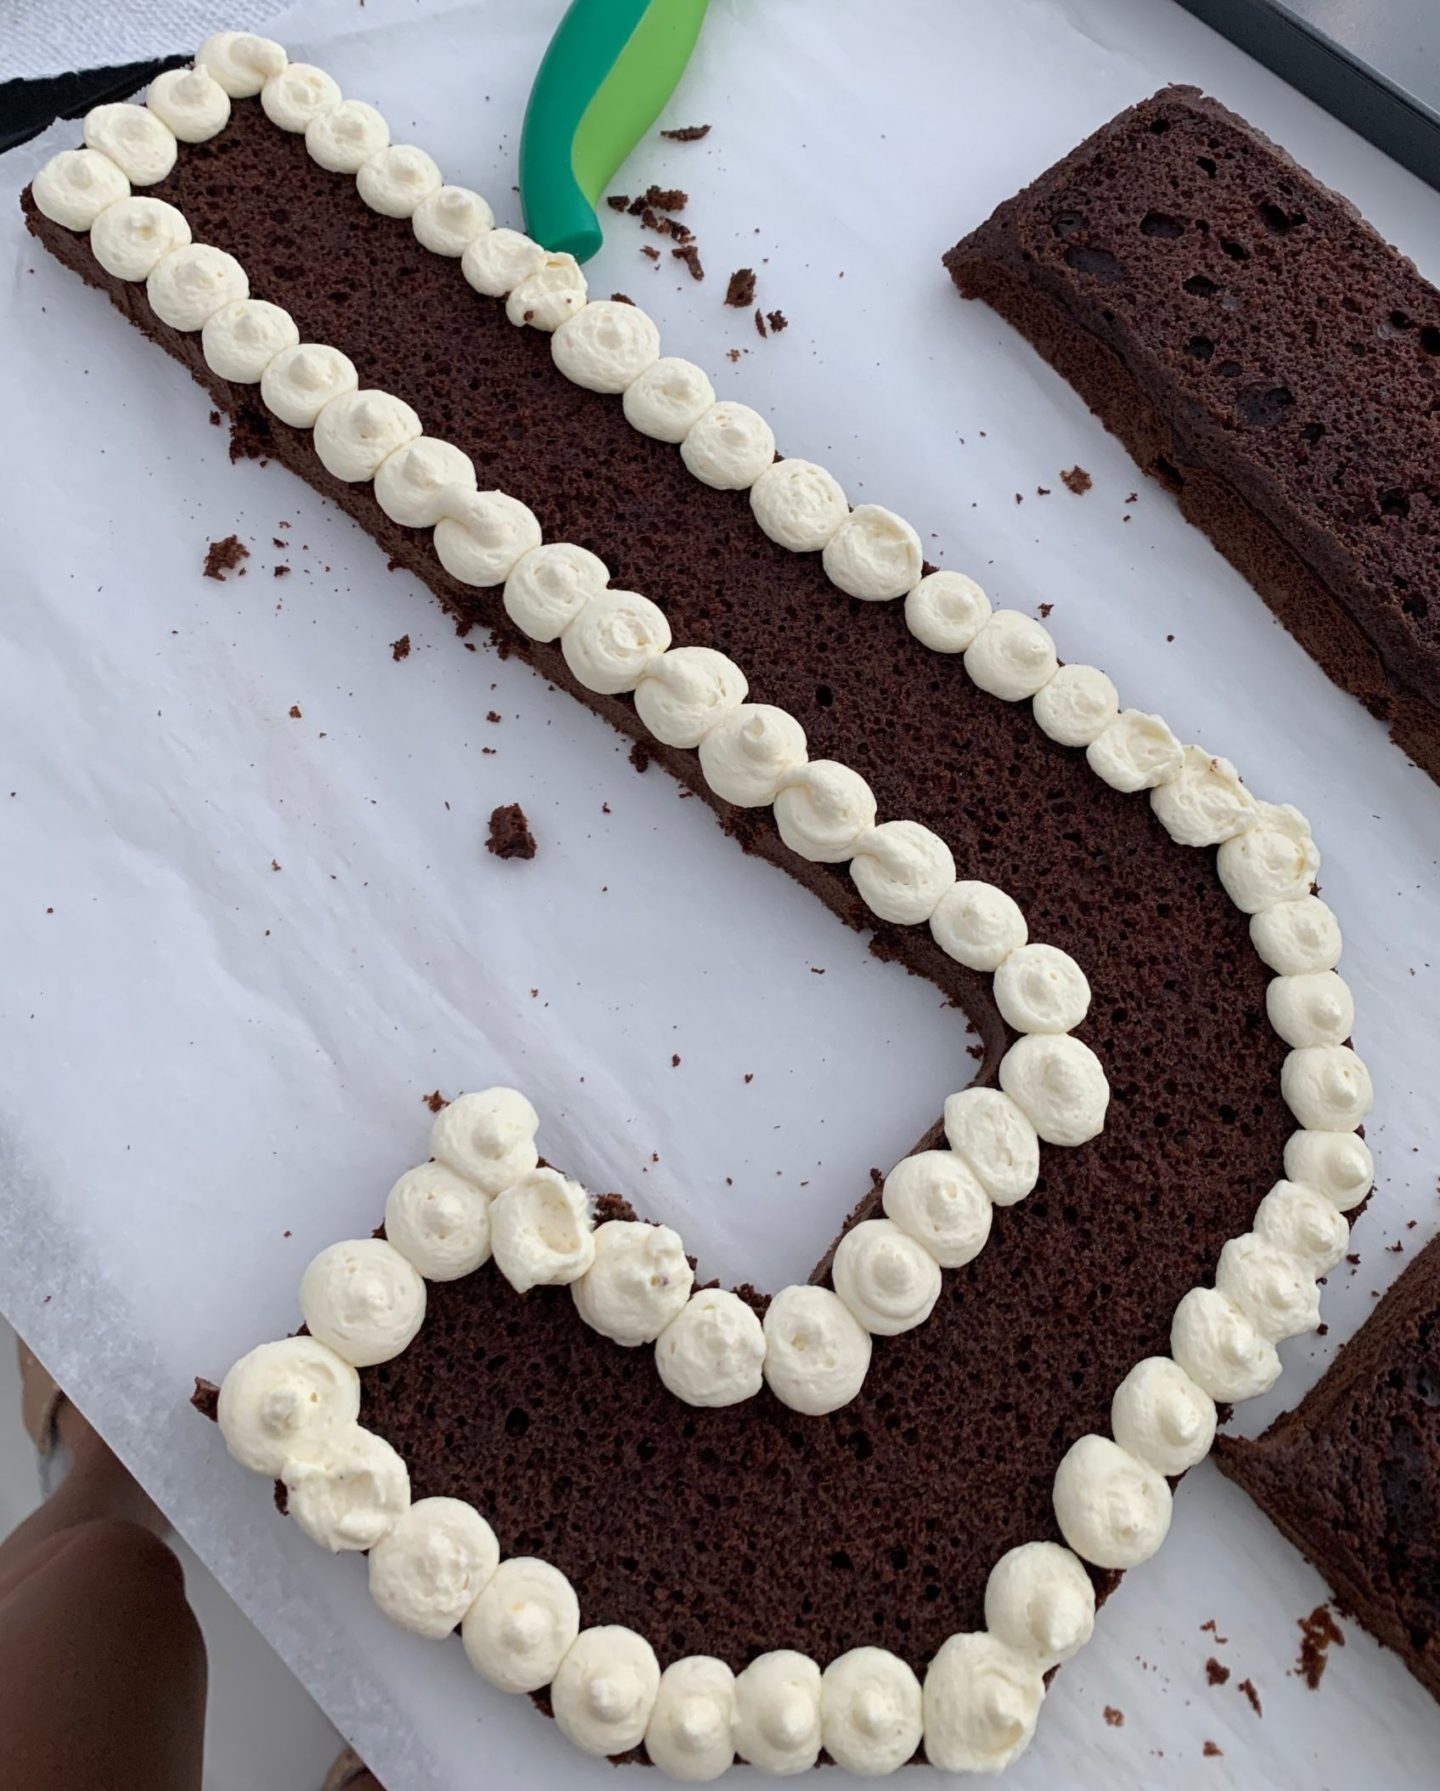 Letter cake in the making